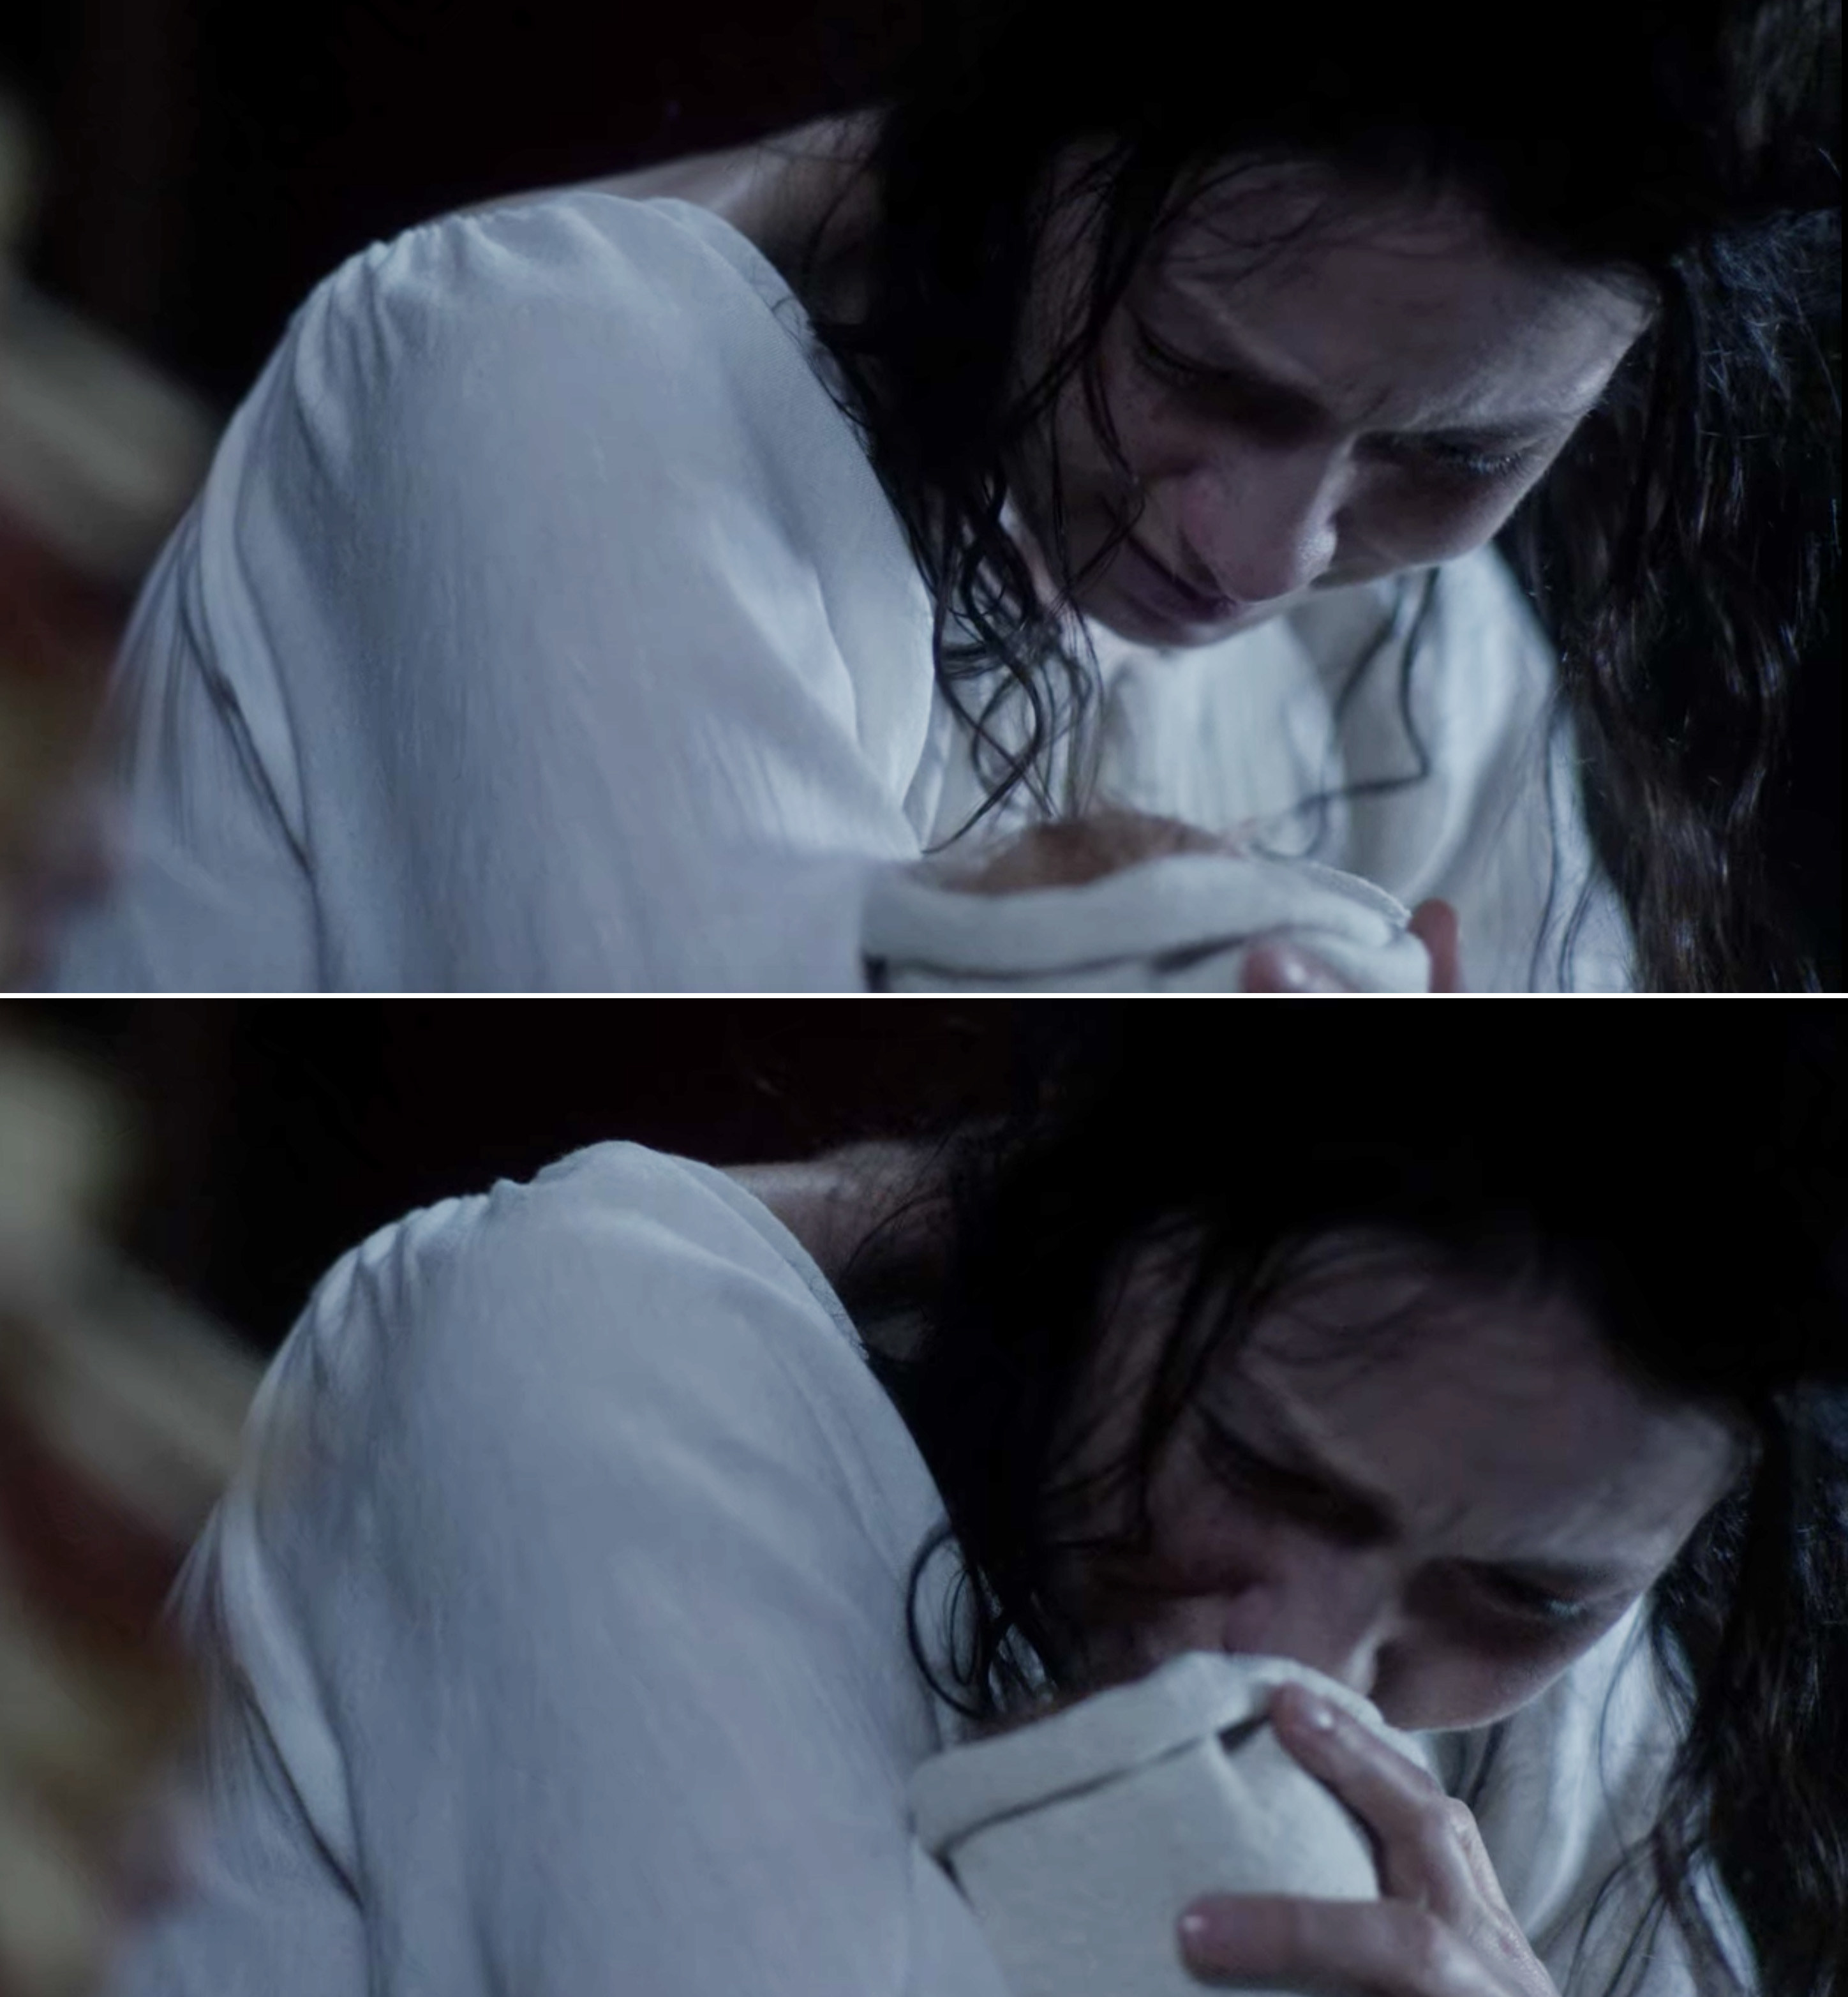 Claire weeping while holding Faith one last time